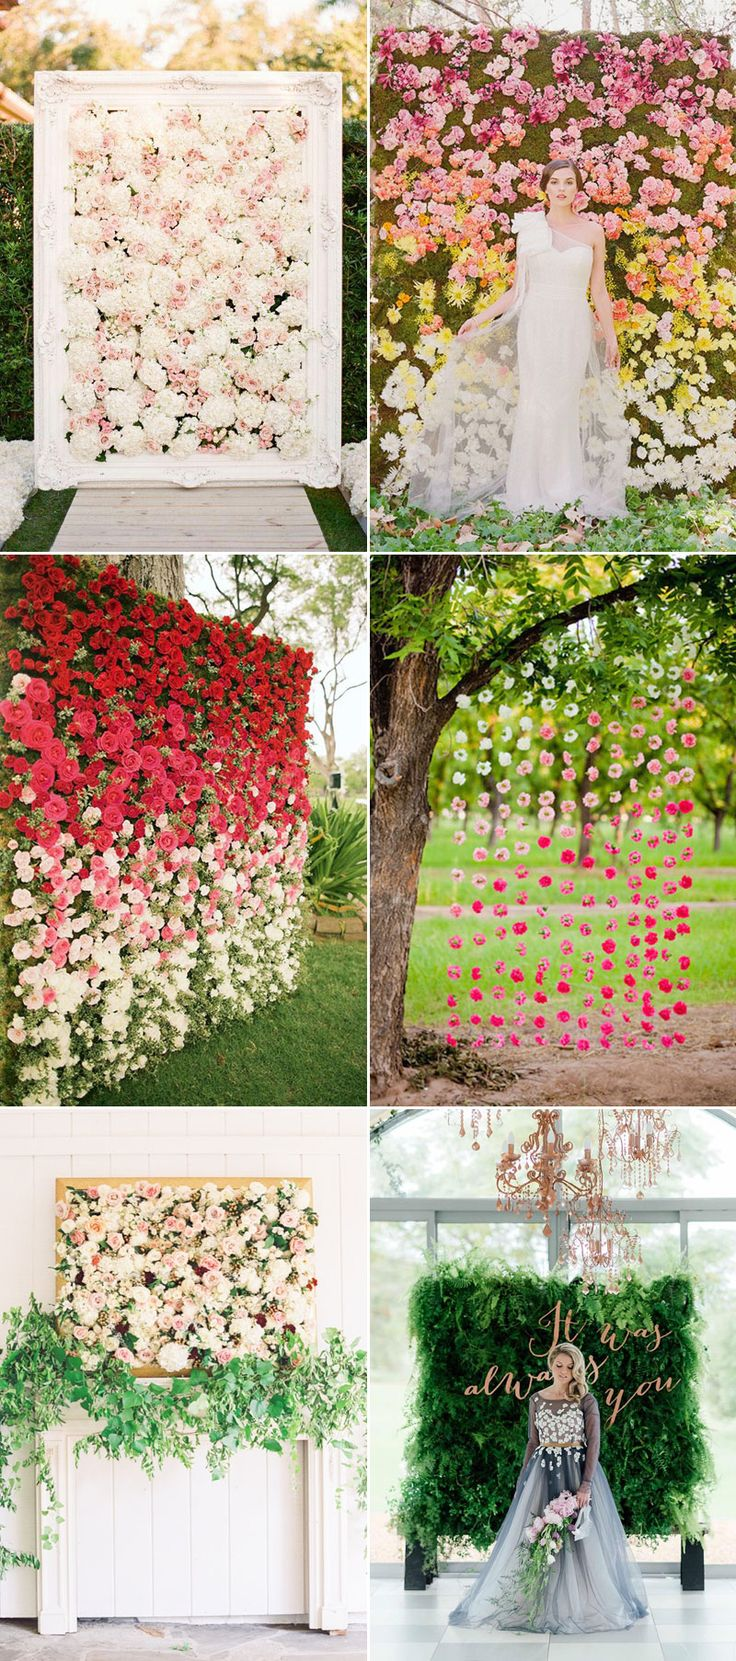 Outdoor garden wedding decoration ideas   Best images about Big Day of Assz on Pinterest  Backdrops Pipe